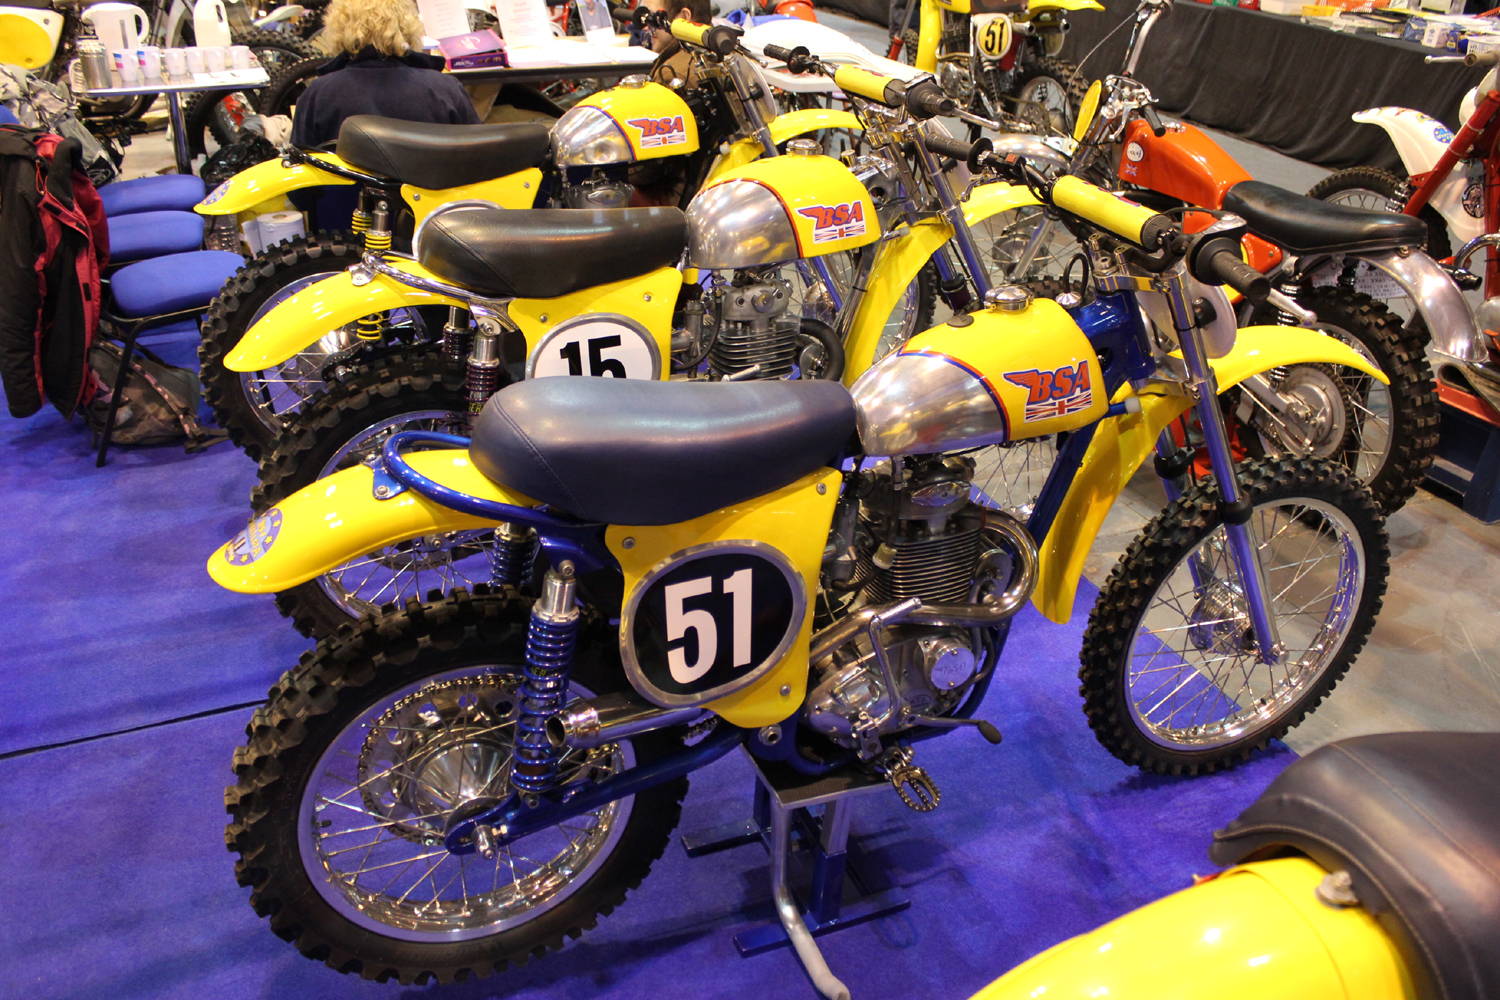 classicdirtbikerider.com-photo by Mr J-2015 Telford classic dirt bike show-LINE UP OF FANTASTIC BSA SCRAMBLERS